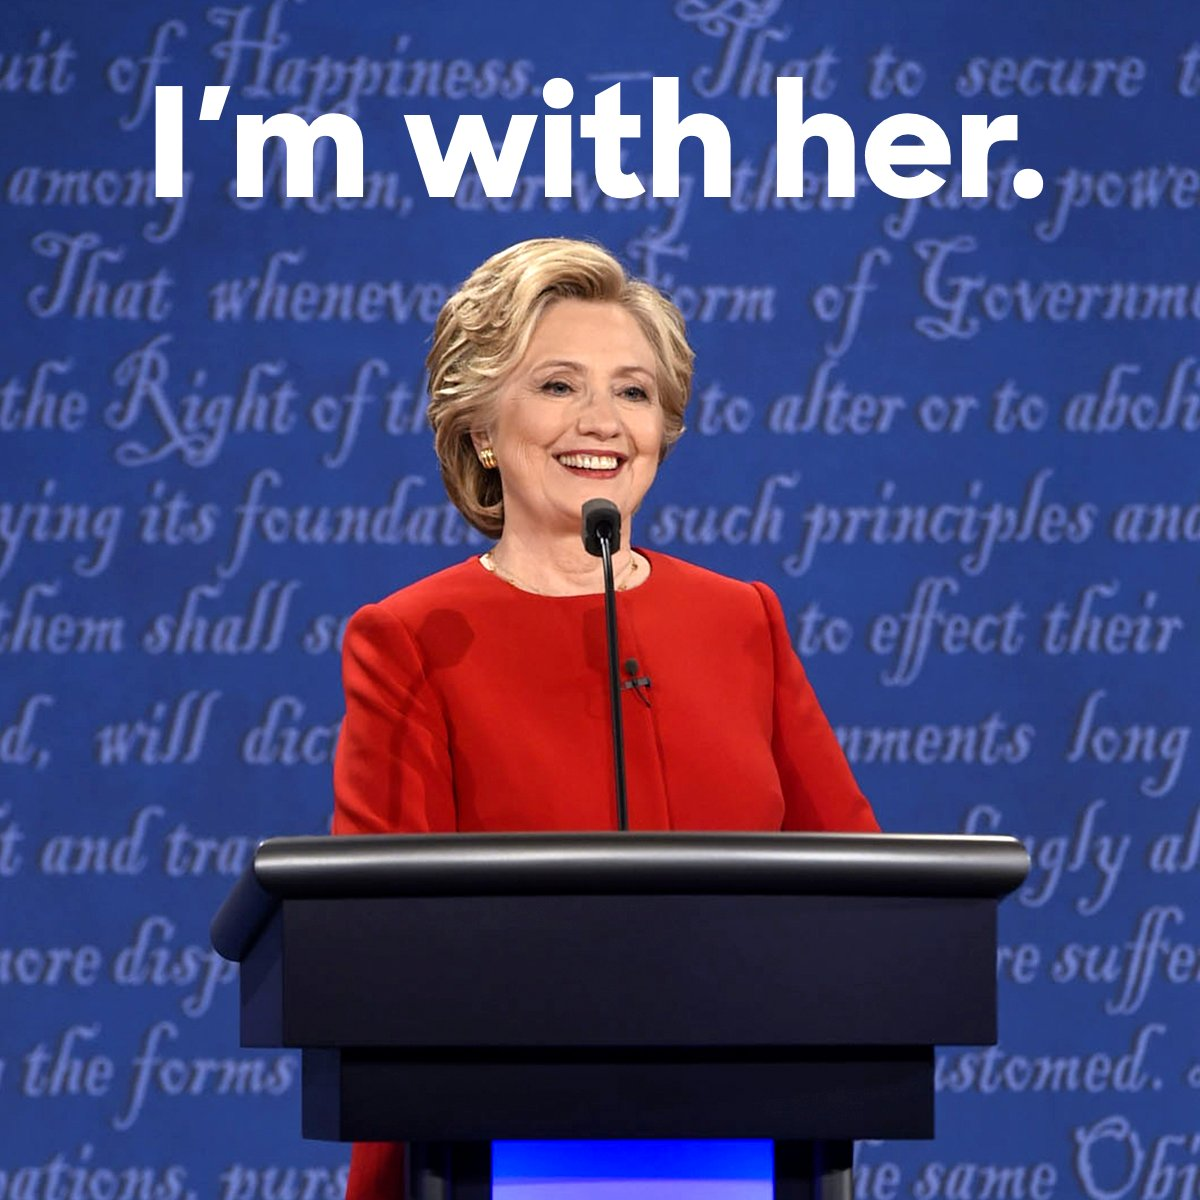 RT this if you're proud to be standing with Hillary tonight. #debatenight